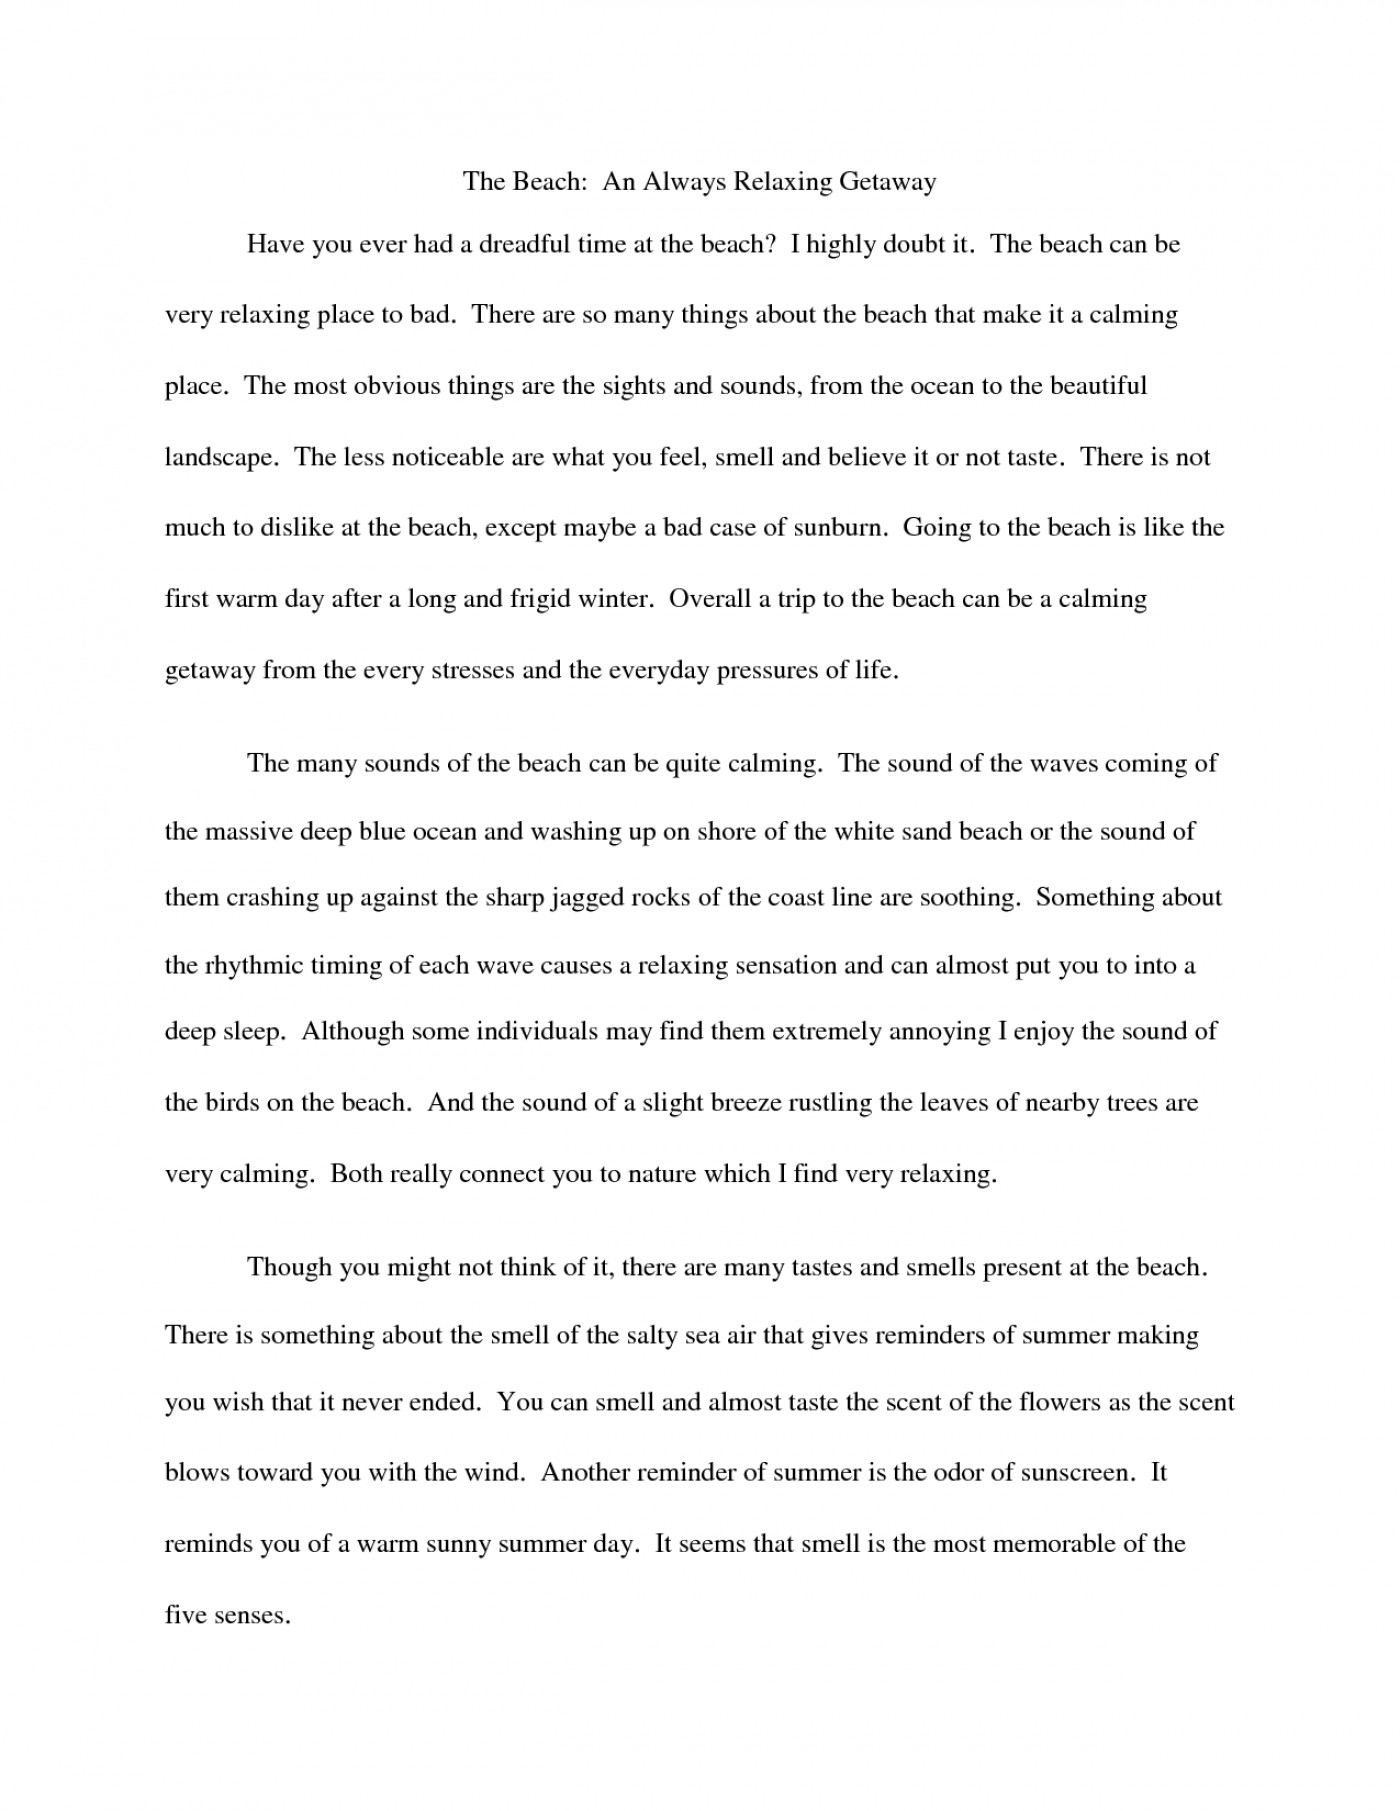 004 Essaye Descriptive Beach Essays College That Stand Out Odvqltnc Short On The Sunset Paper Barefoot About Walk Vacation Narrative At Night Free Walking Amazing Examples Essay Sample For High School A Person Food 1400